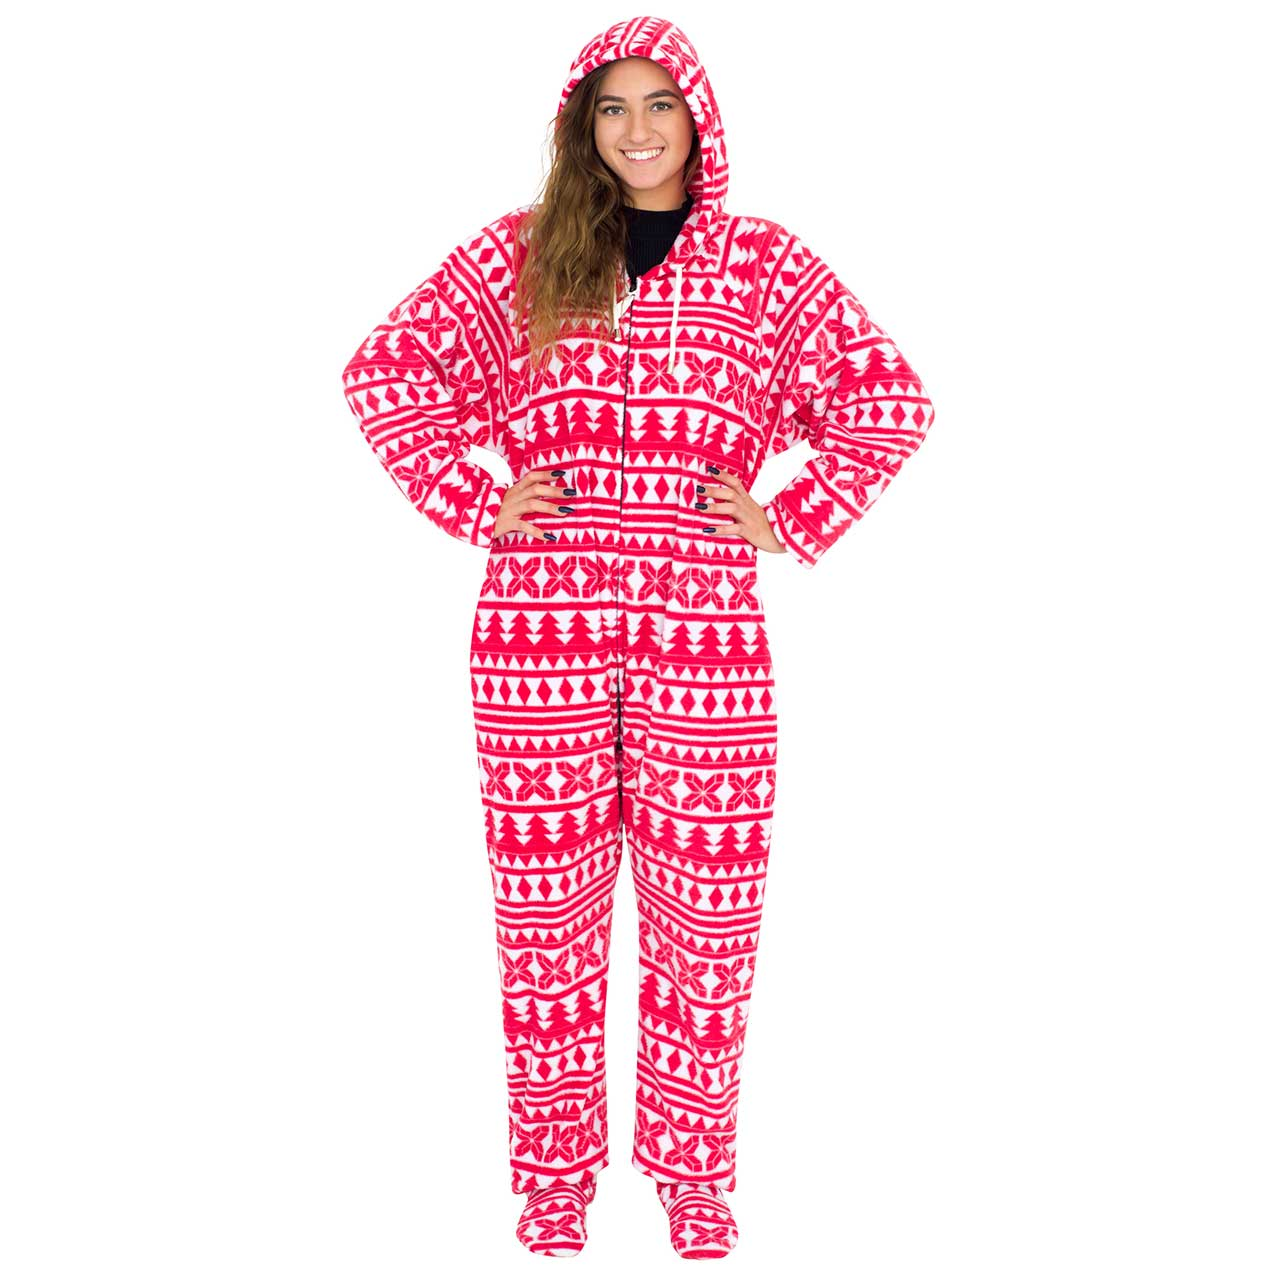 Red and White Ugly Christmas Pajama Suit with Hood,Ugly Christmas Sweaters | Funny Xmas Sweaters for Men and Women